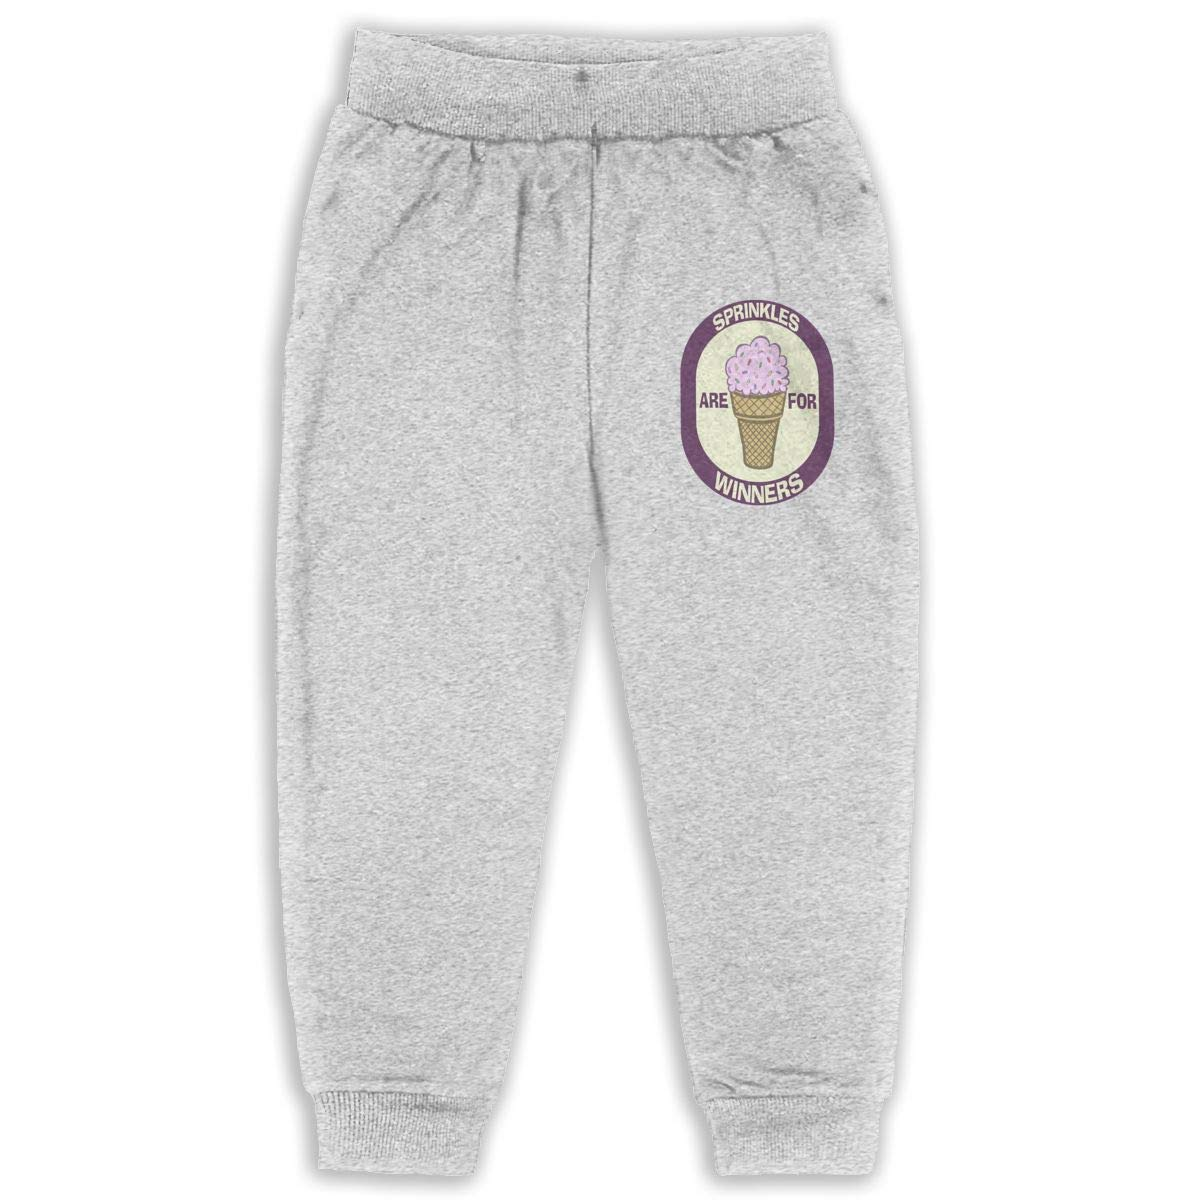 Sprinkles are for Winners Kids Cotton Sweatpants,Jogger Long Jersey Sweatpants